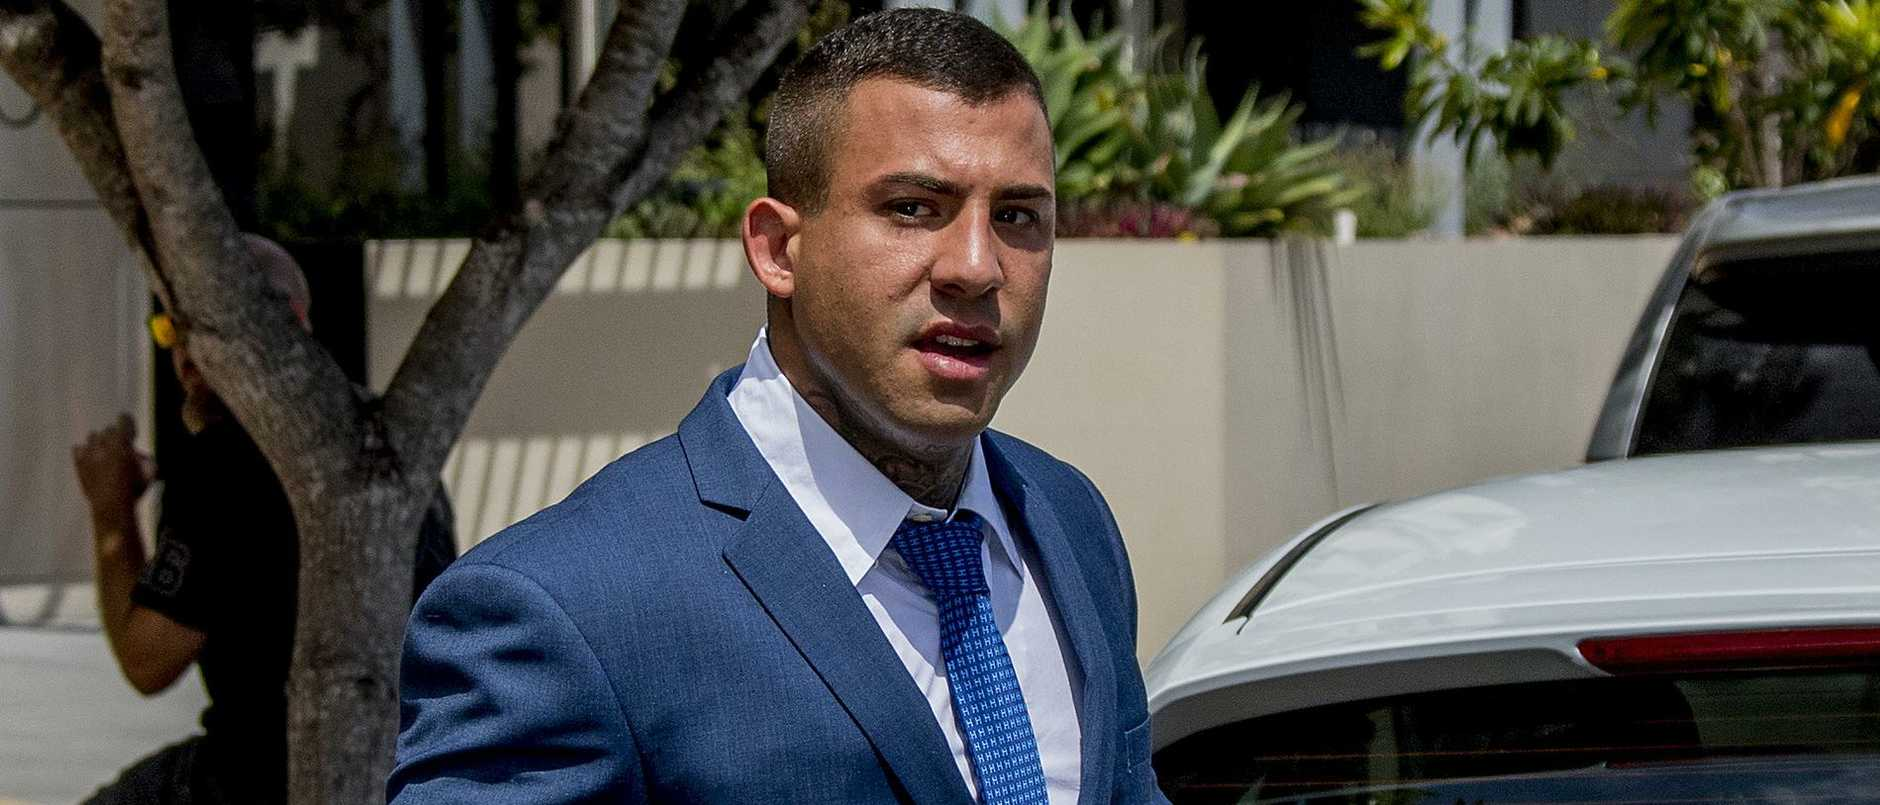 An infamous bikie has been hit with a perjury charge by Crime and Corruption Commission detectives investigating a prominent Gold Coast law firm.